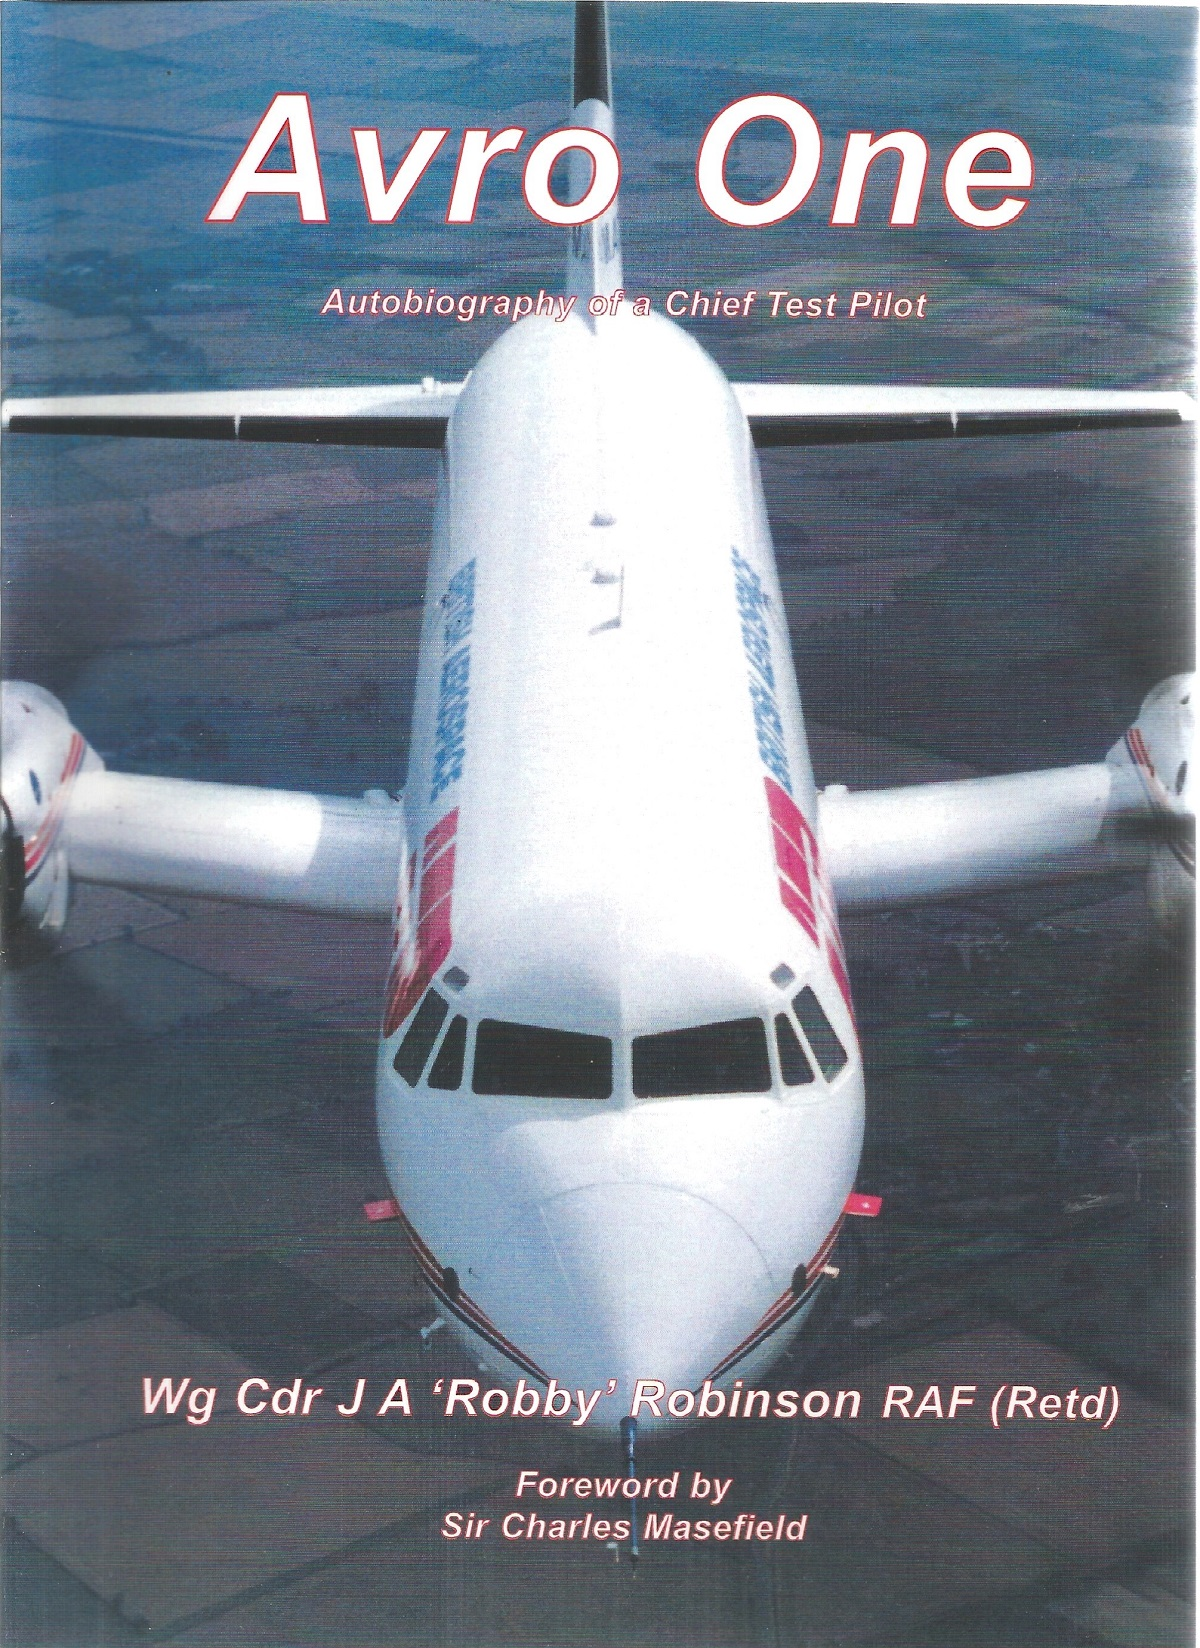 Wg Cdr J. A. 'Robby' Robinson RAF. Avro One. A WW2 First Edition paperback book in good condition.